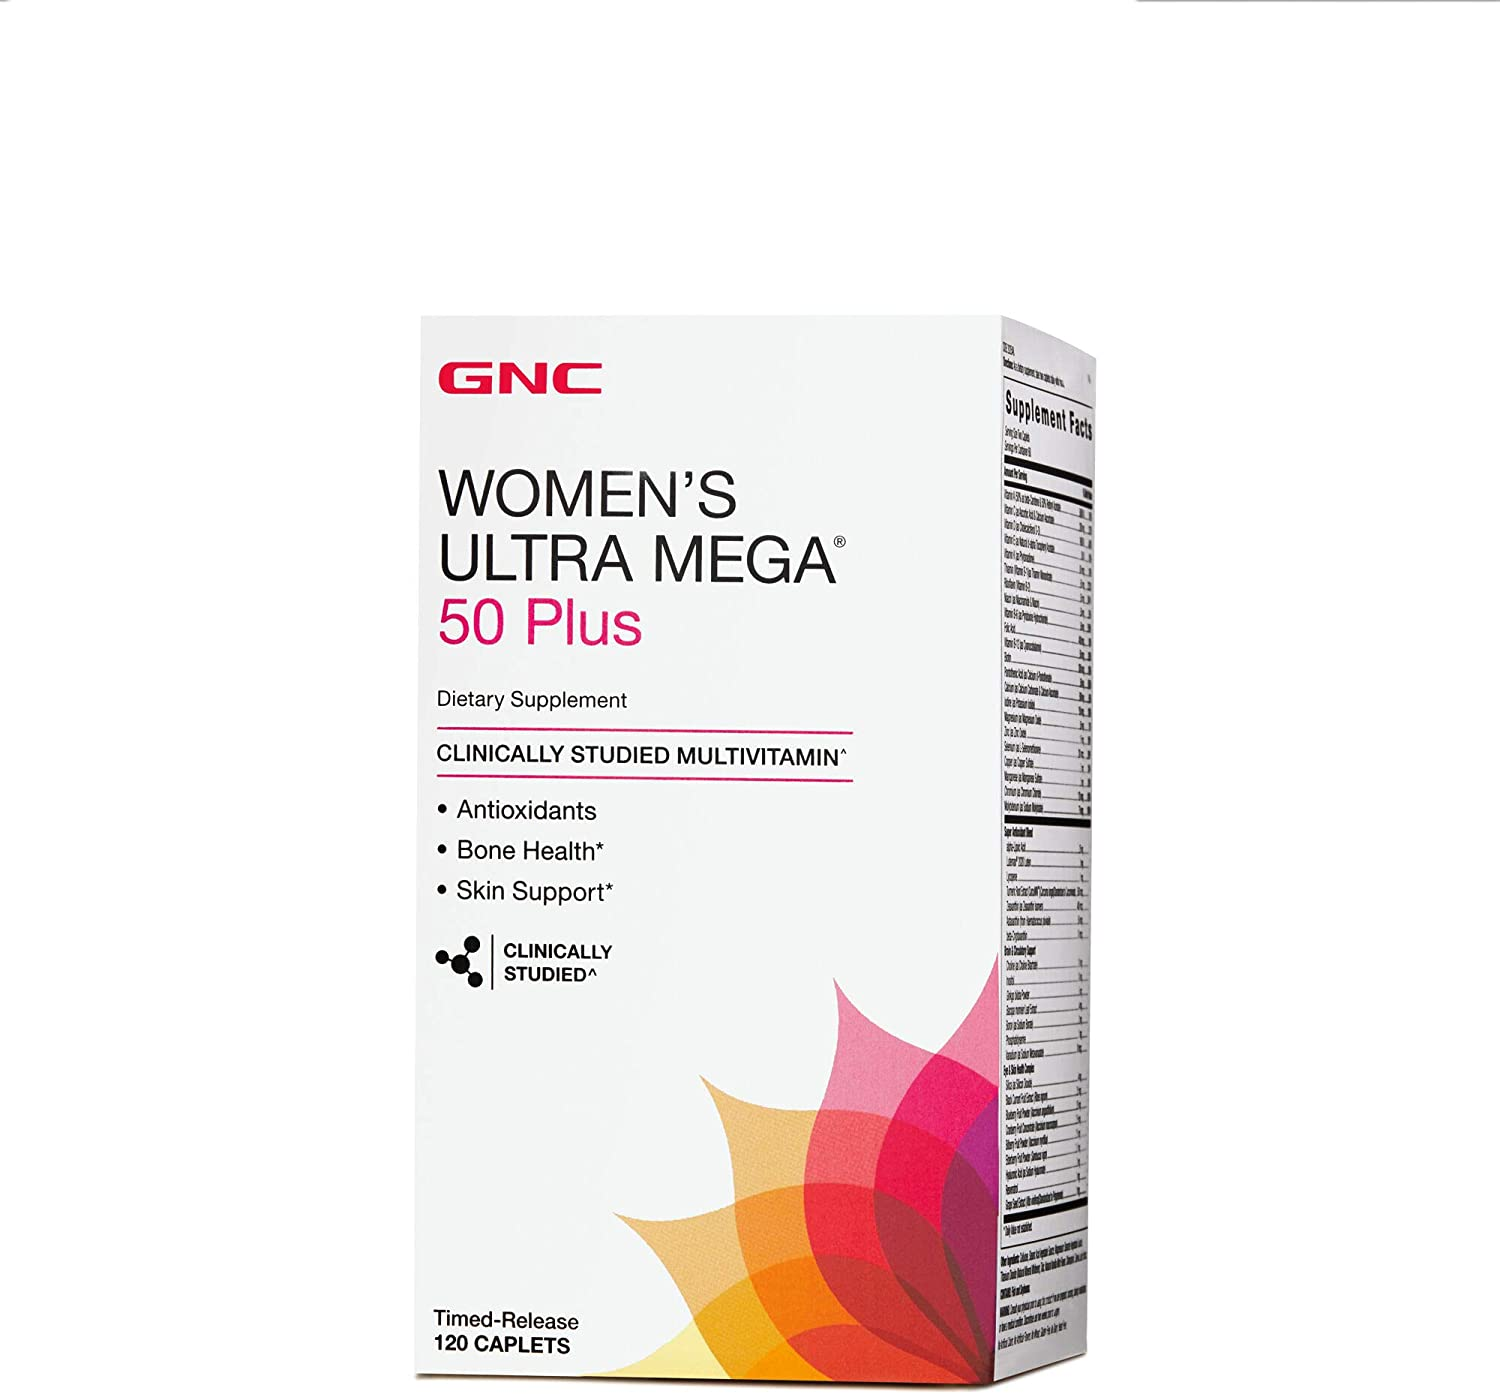 GNC Womens Ultra Mega 50 Plus Multivitamin for Women, 120 Count, Vitamin, Multivitamin